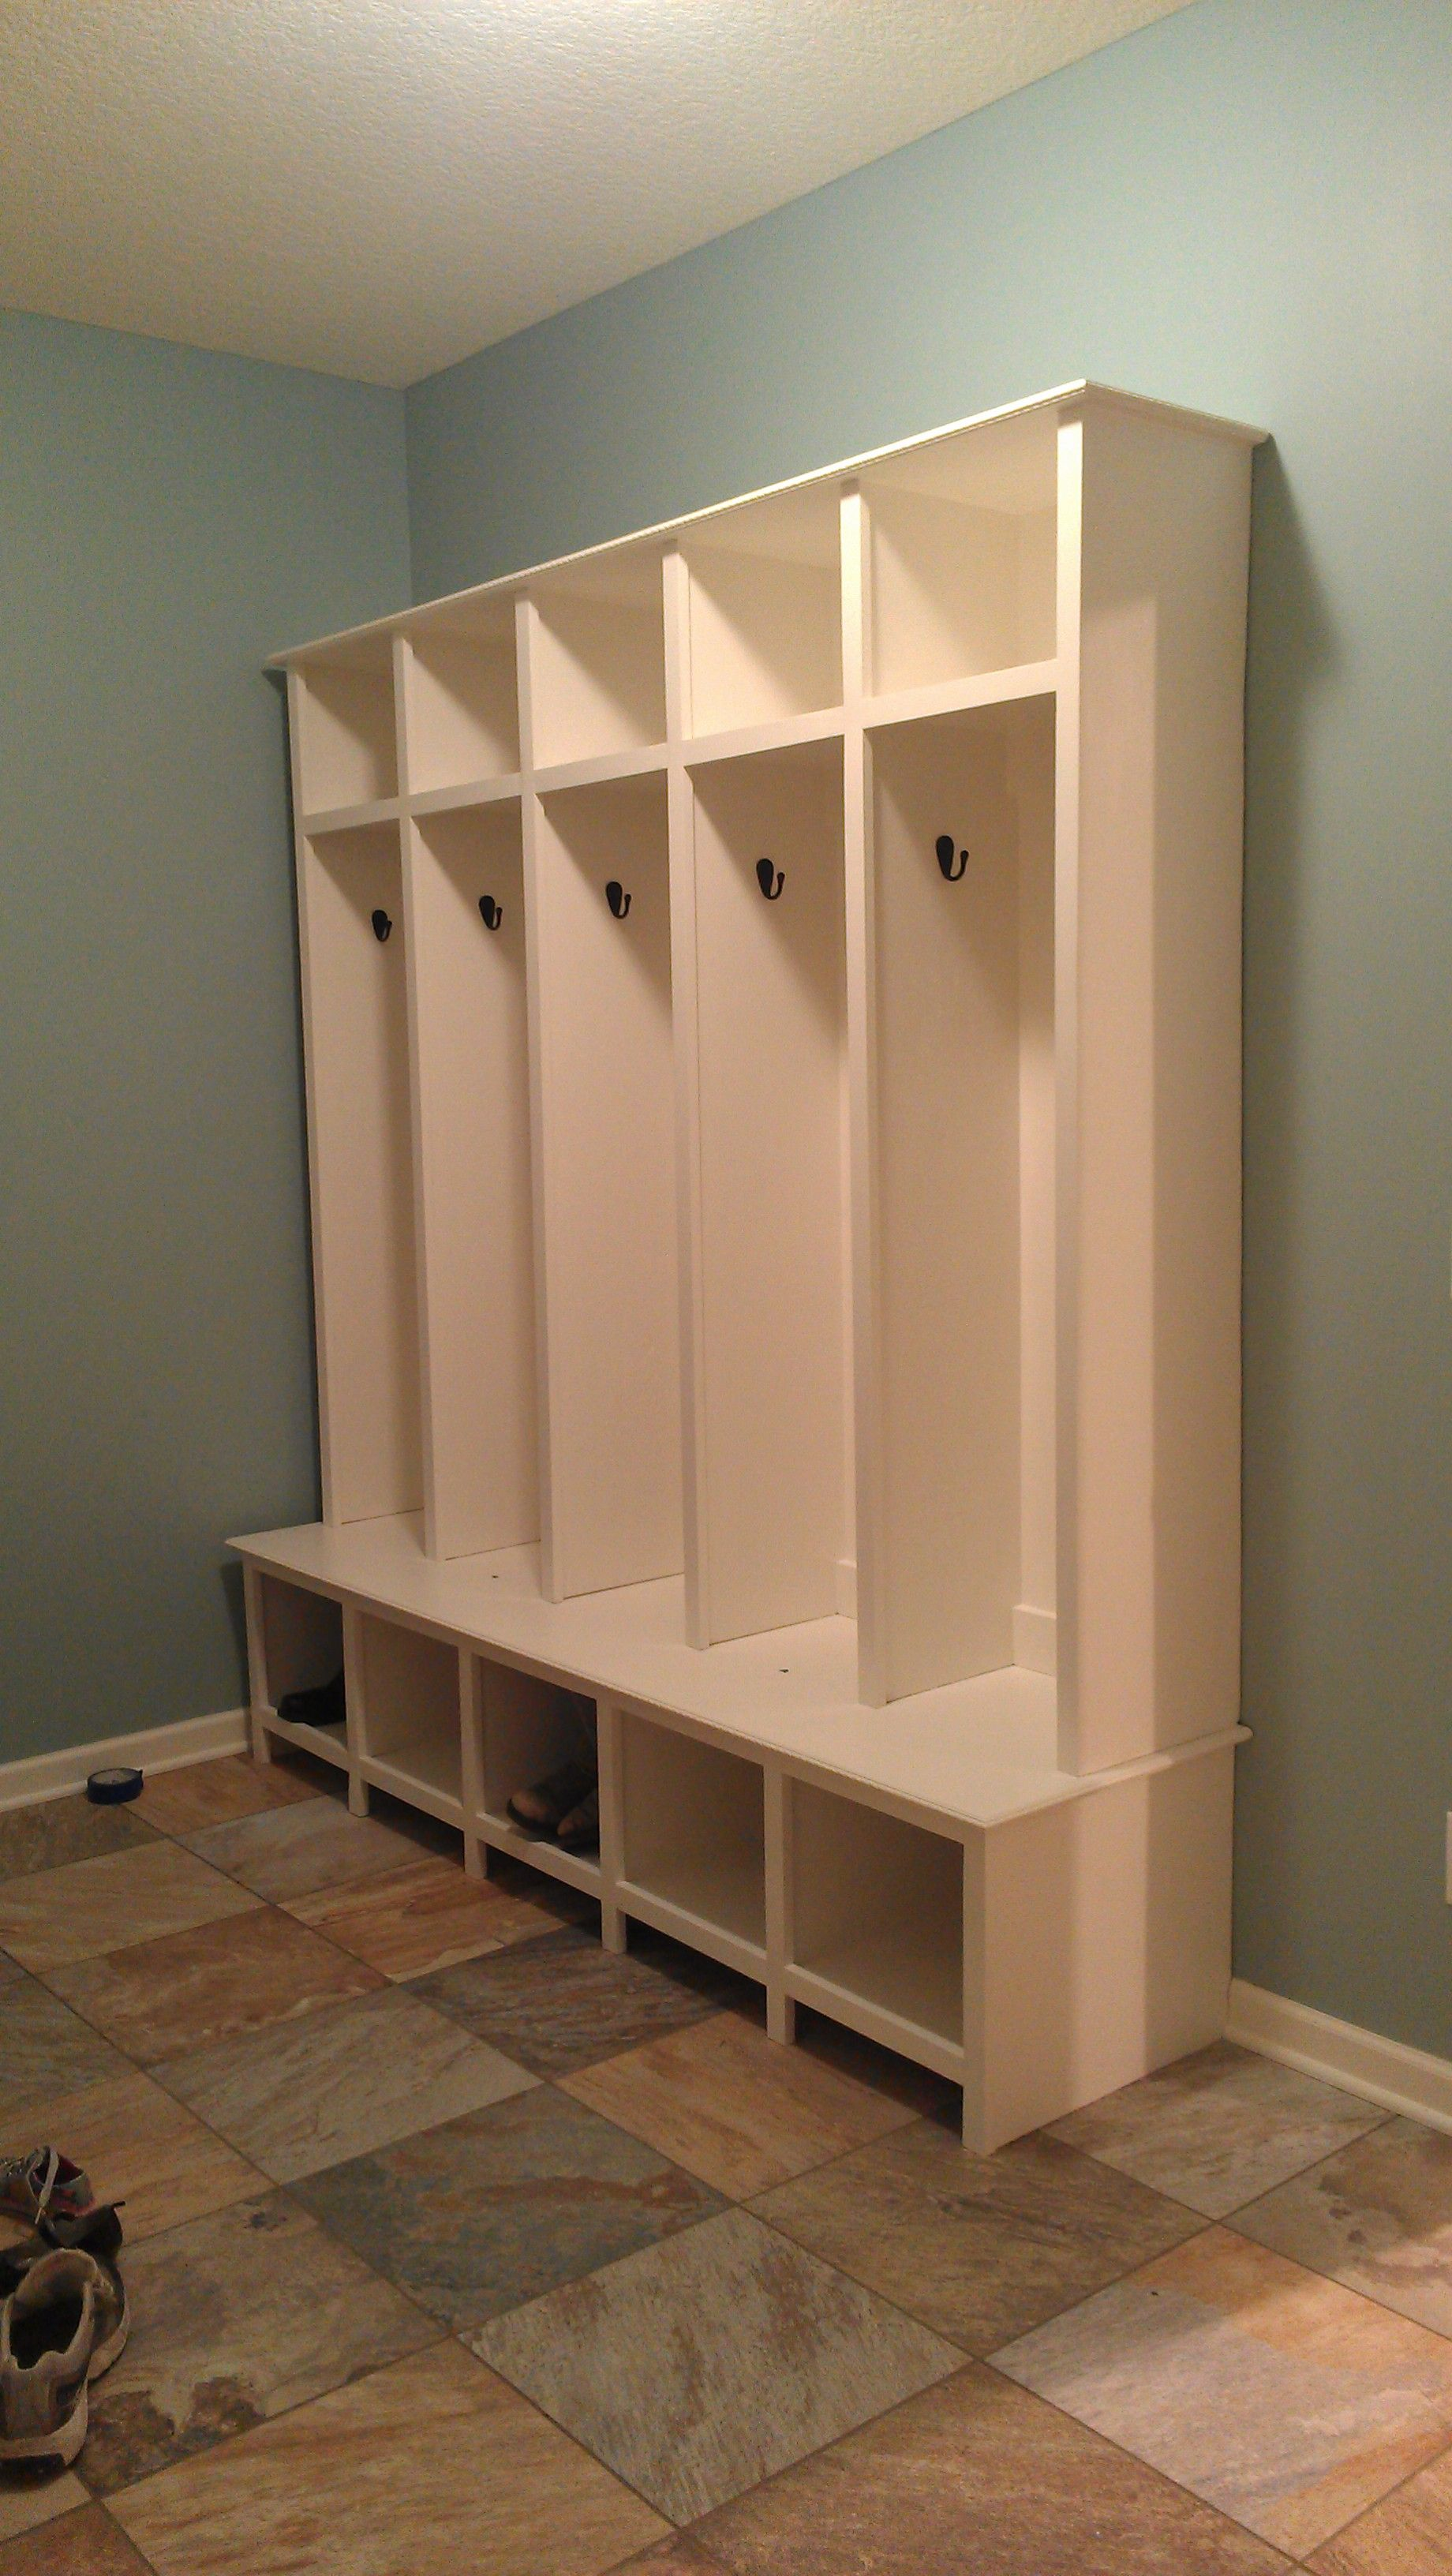 Mudroom Lockers Do It Yourself Home Projects From Ana White Mudroom Lockers Mudroom Furniture Mud Room Storage